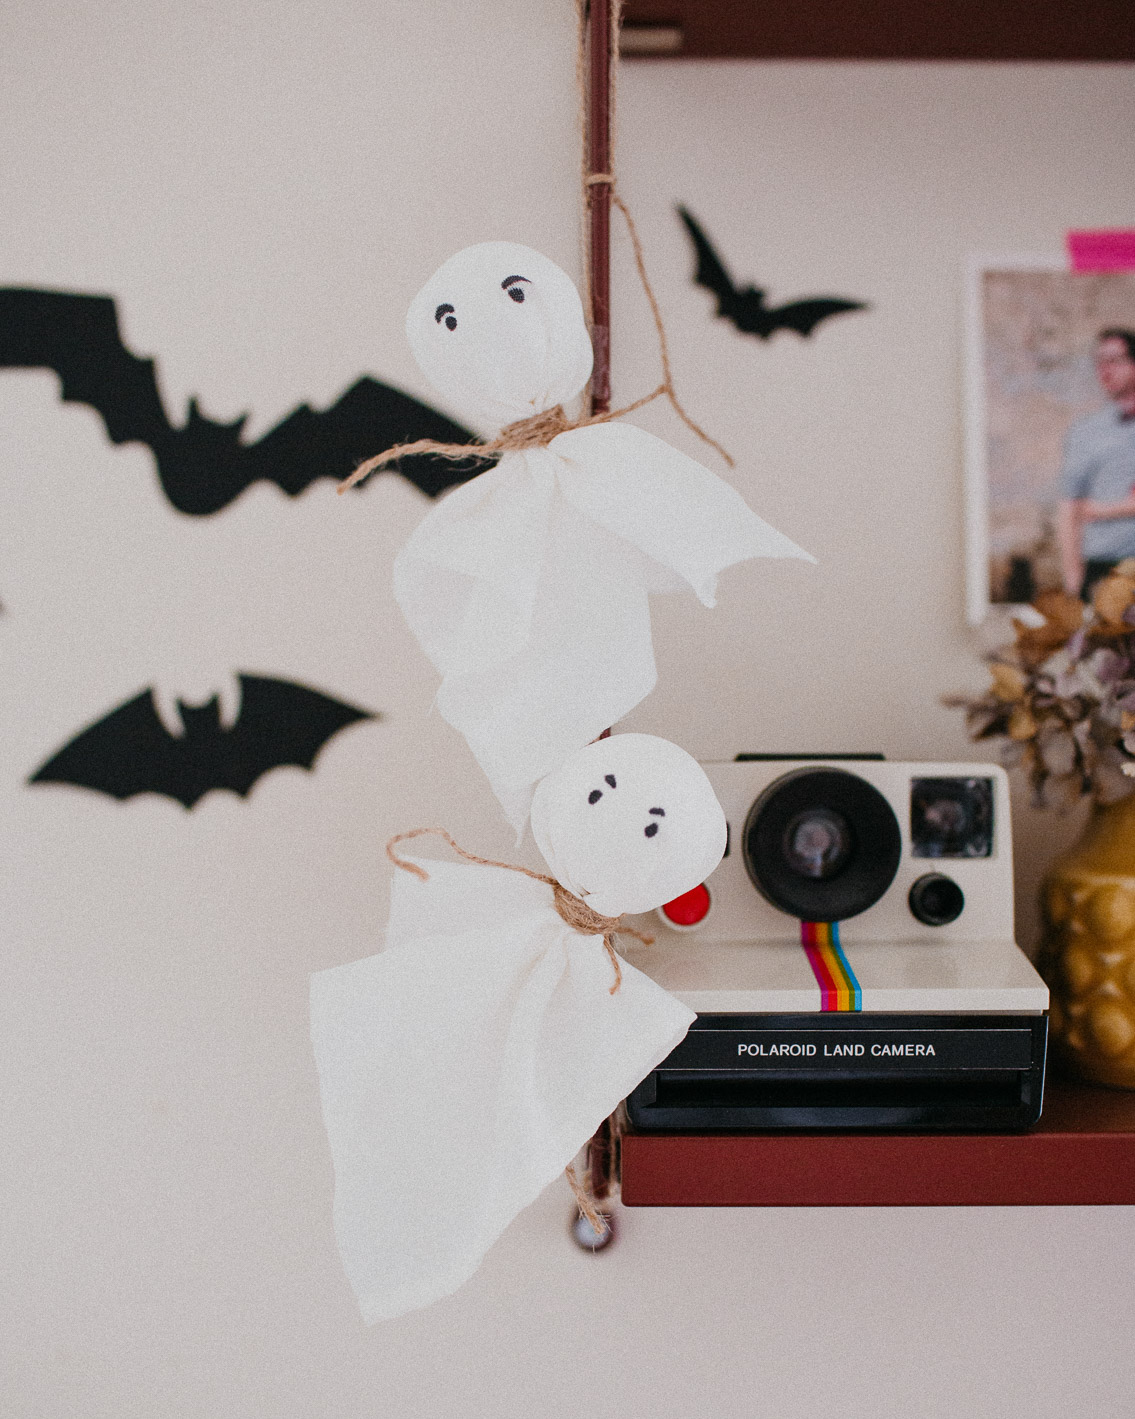 Halloween decor 2020 ghosts - The cat, you and us